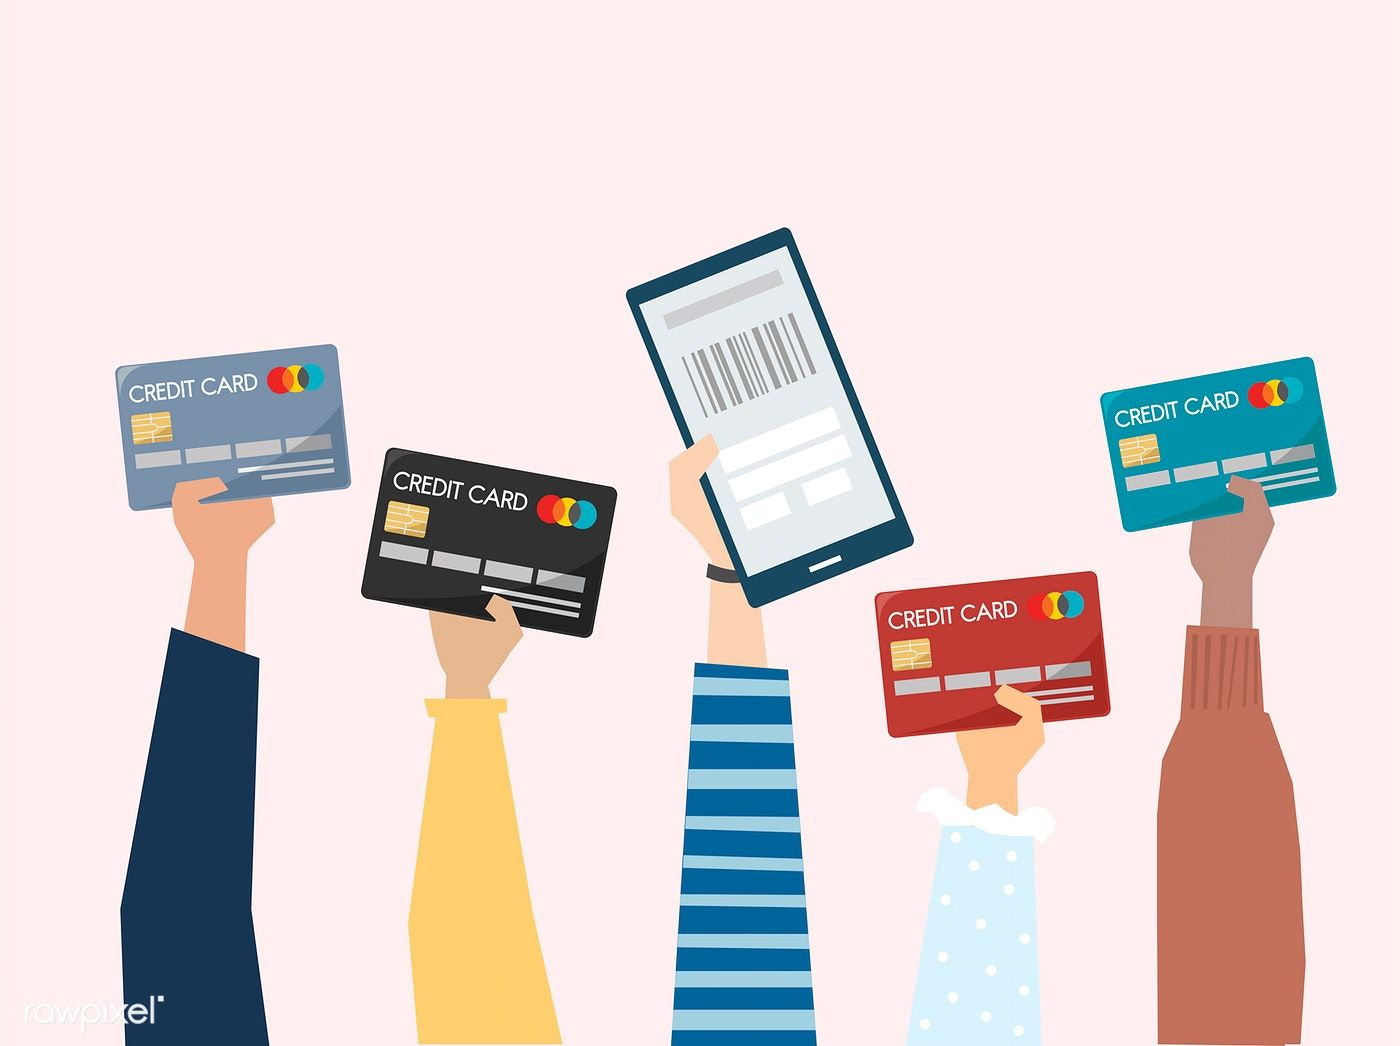 Illustration Of Online Payment With Credit Card Free Image By Rawpixel Com Sasi Card Illustration Credit Card Icon Credit Card Art